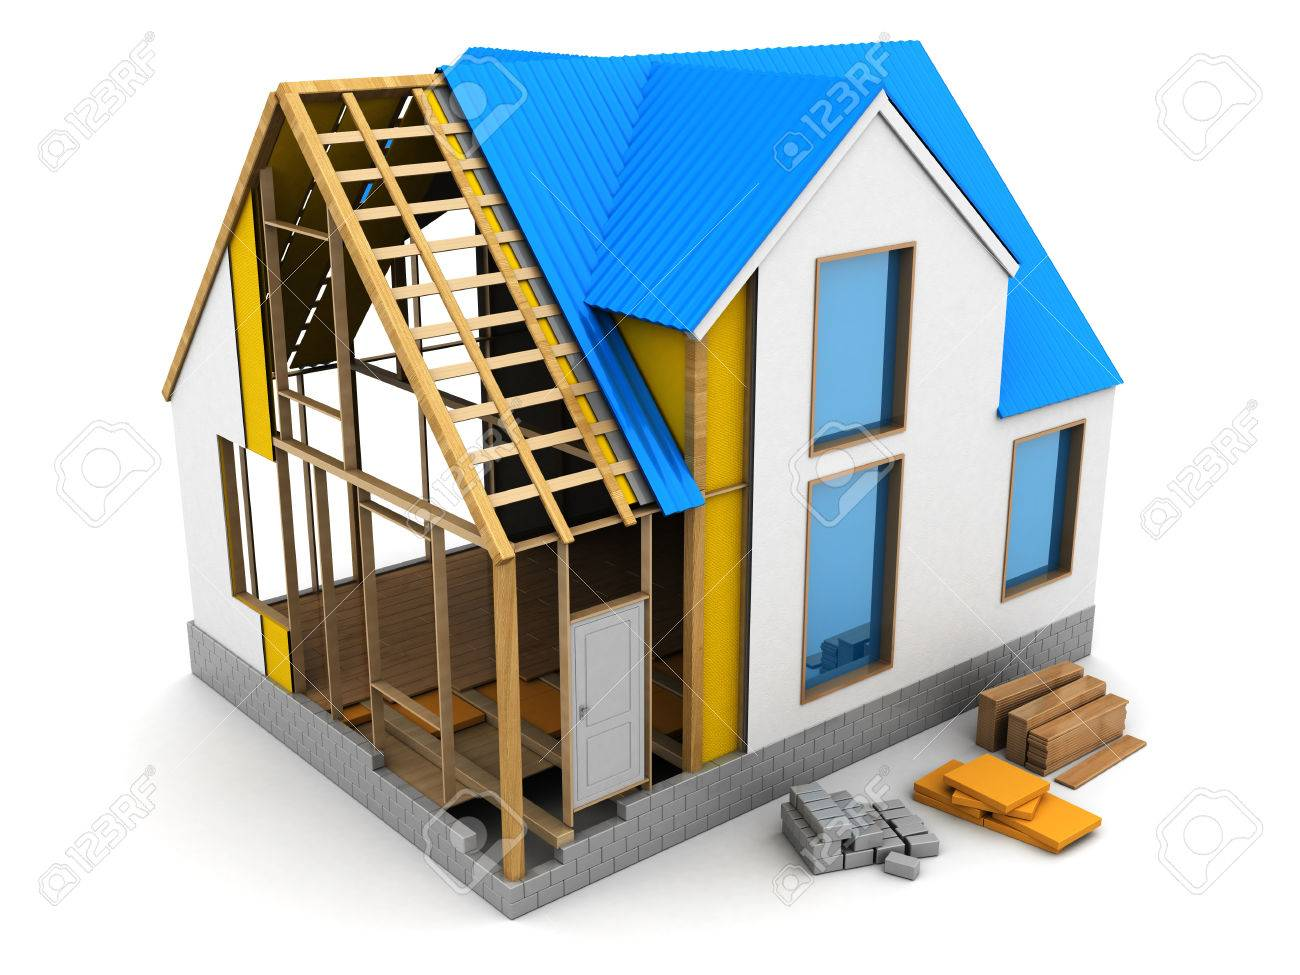 3d Illustration Of Frame House Structure Design Stock Photo, Picture on money and construction, house being built, house bulkhead construction, interior construction, house gutter construction, housing construction, strongback construction, balloon construction, framing construction, masonry house construction, house construction terminology, huge crane construction, parts of a house construction, funny house construction, house made out of popsicle sticks, building construction, house deck construction, house construction work, house under construction, house plumbing,